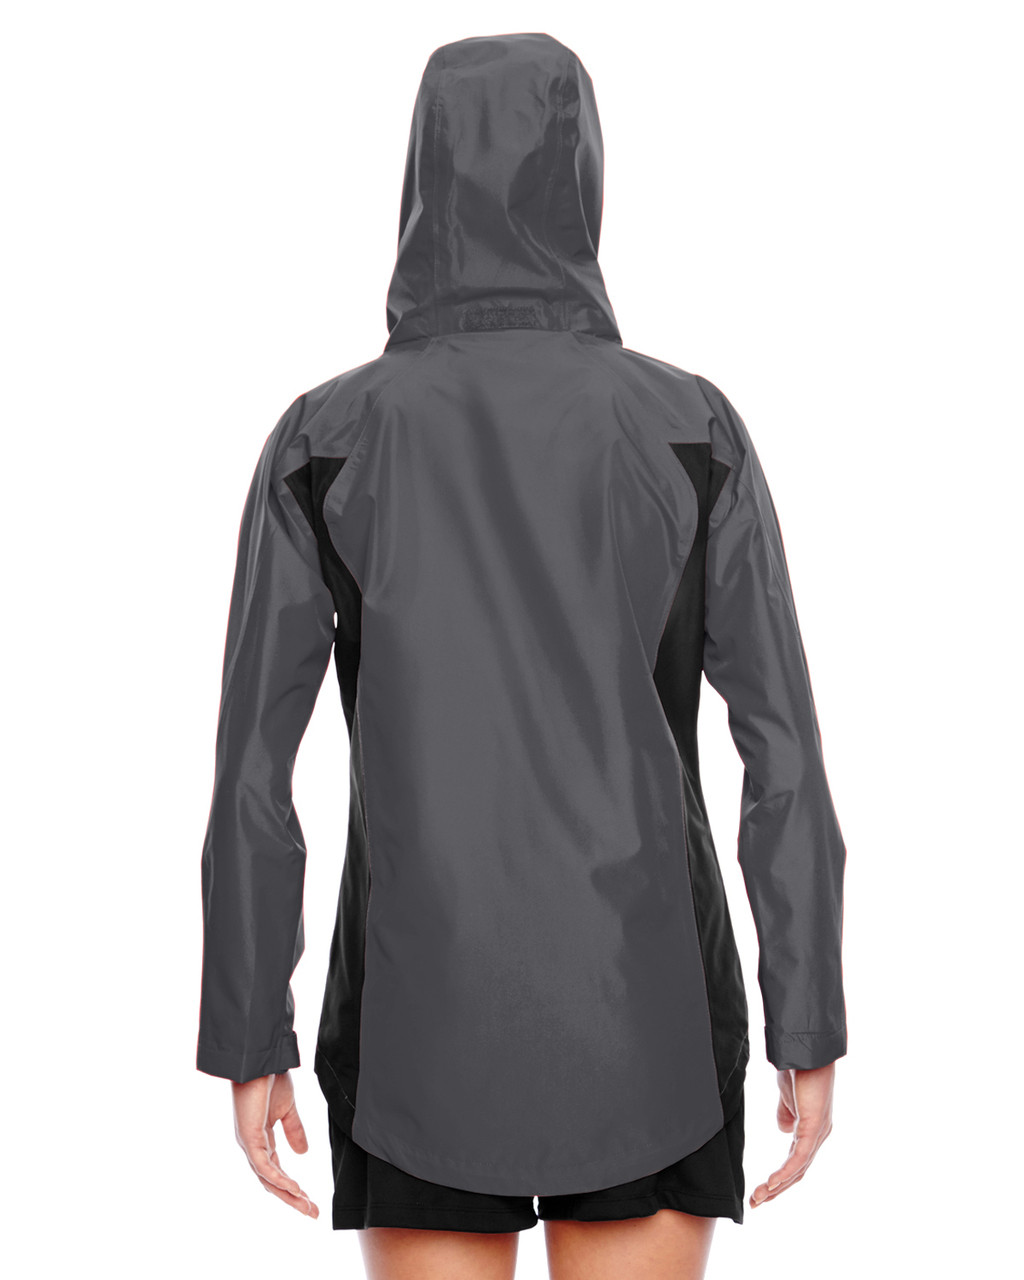 Sport Graphite - Back, TT86W Team 365 Dominator Waterproof Jacket